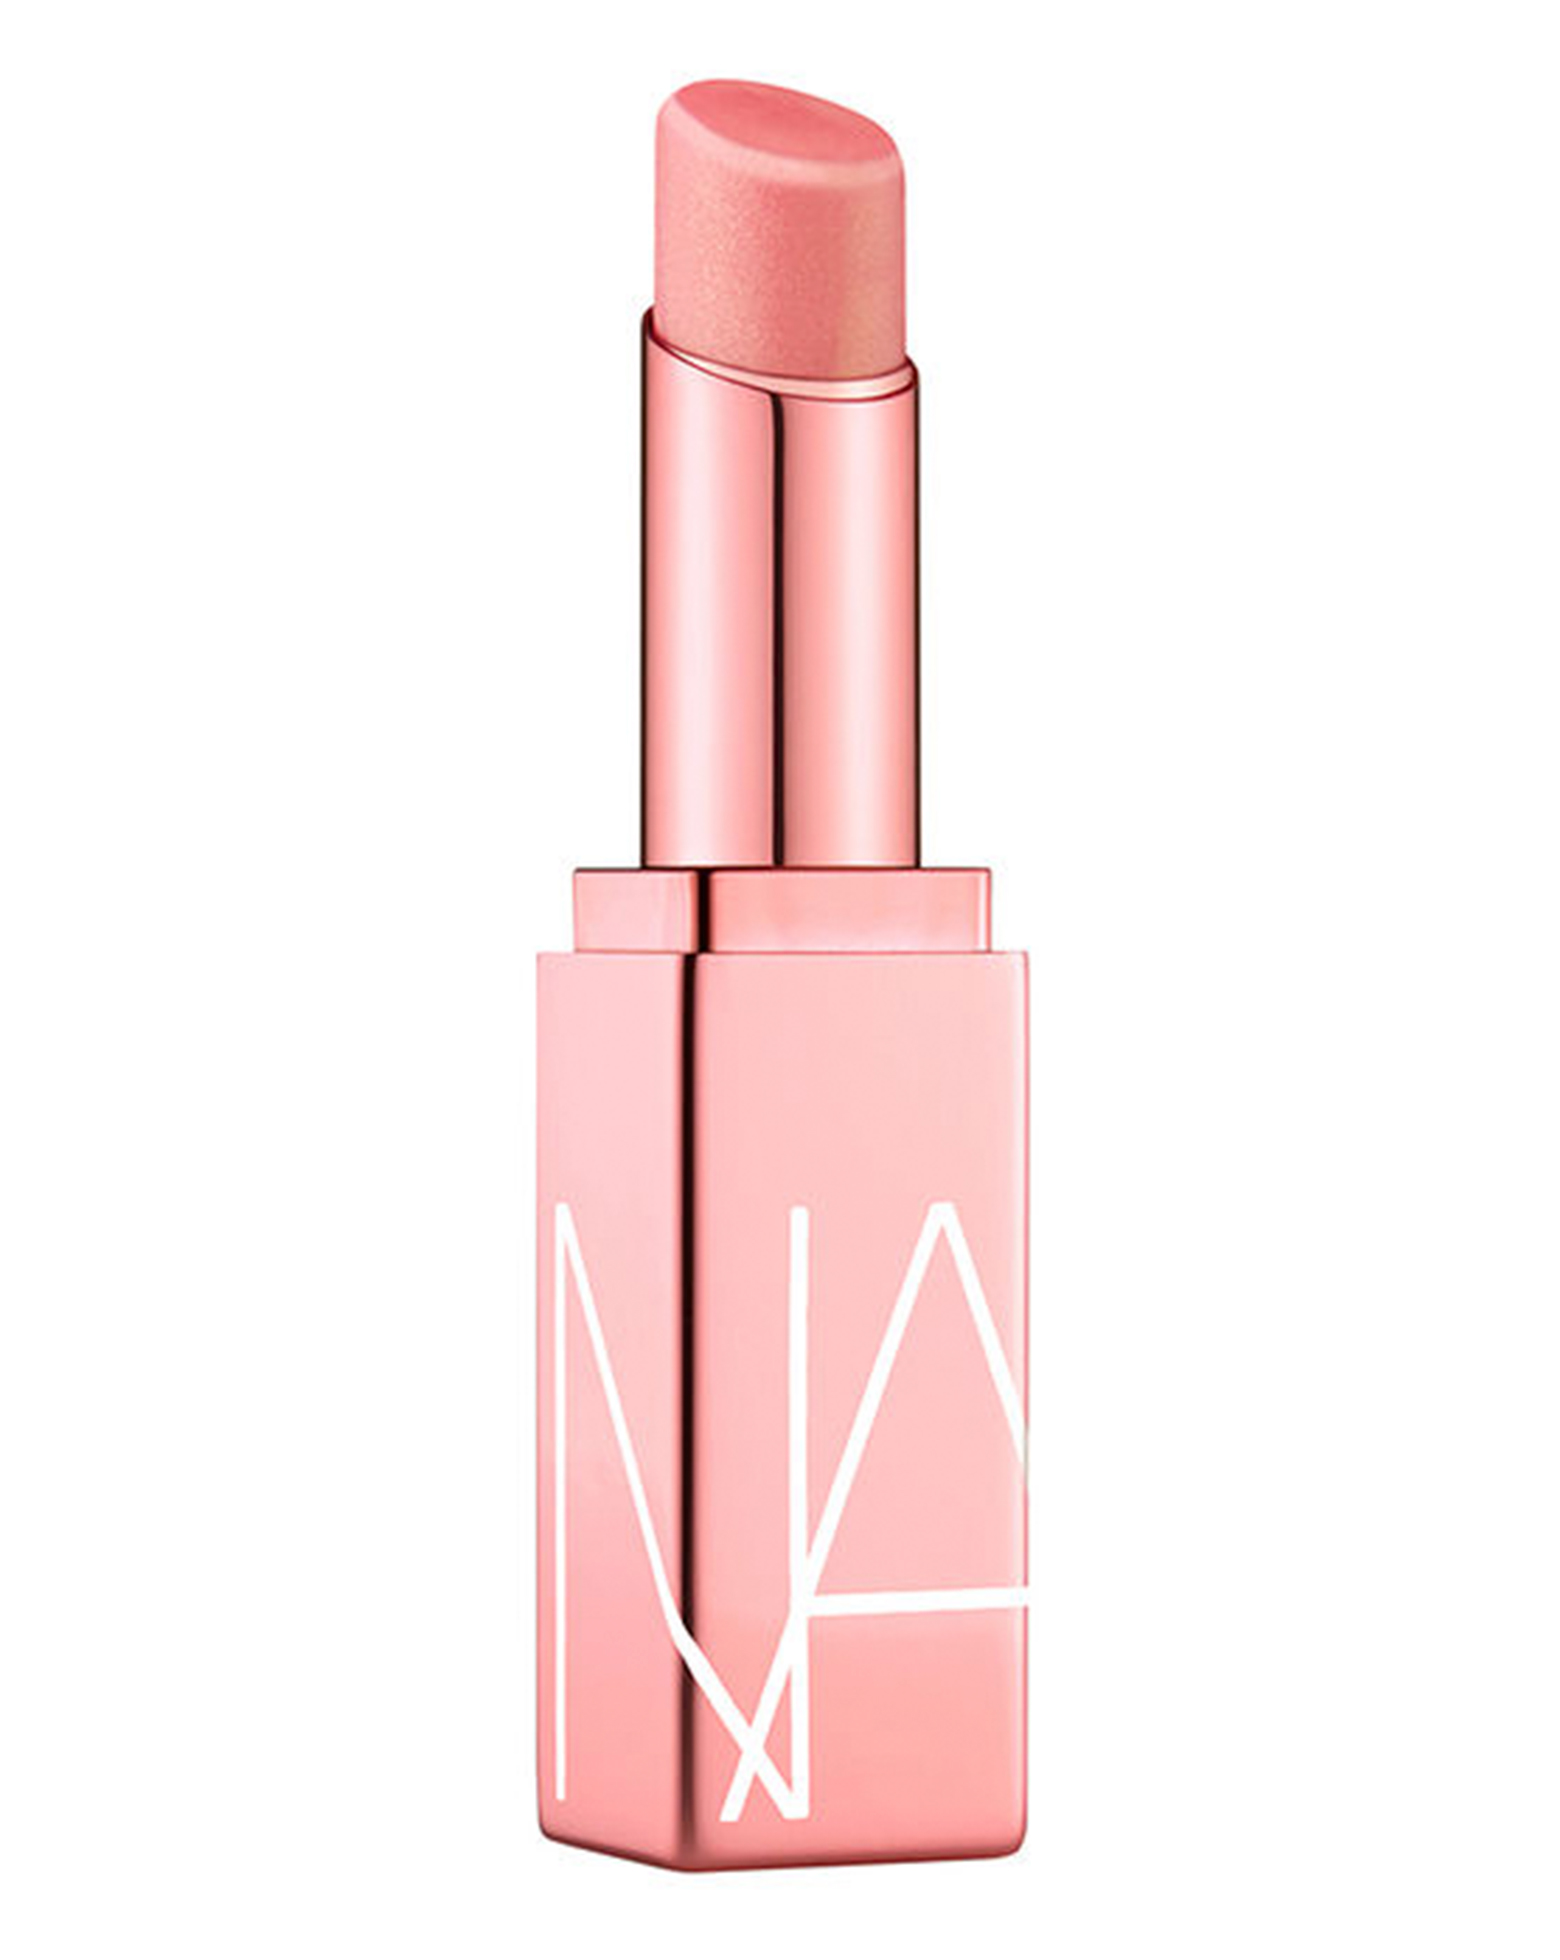 AFTERGLOW LIP BALM - NARS